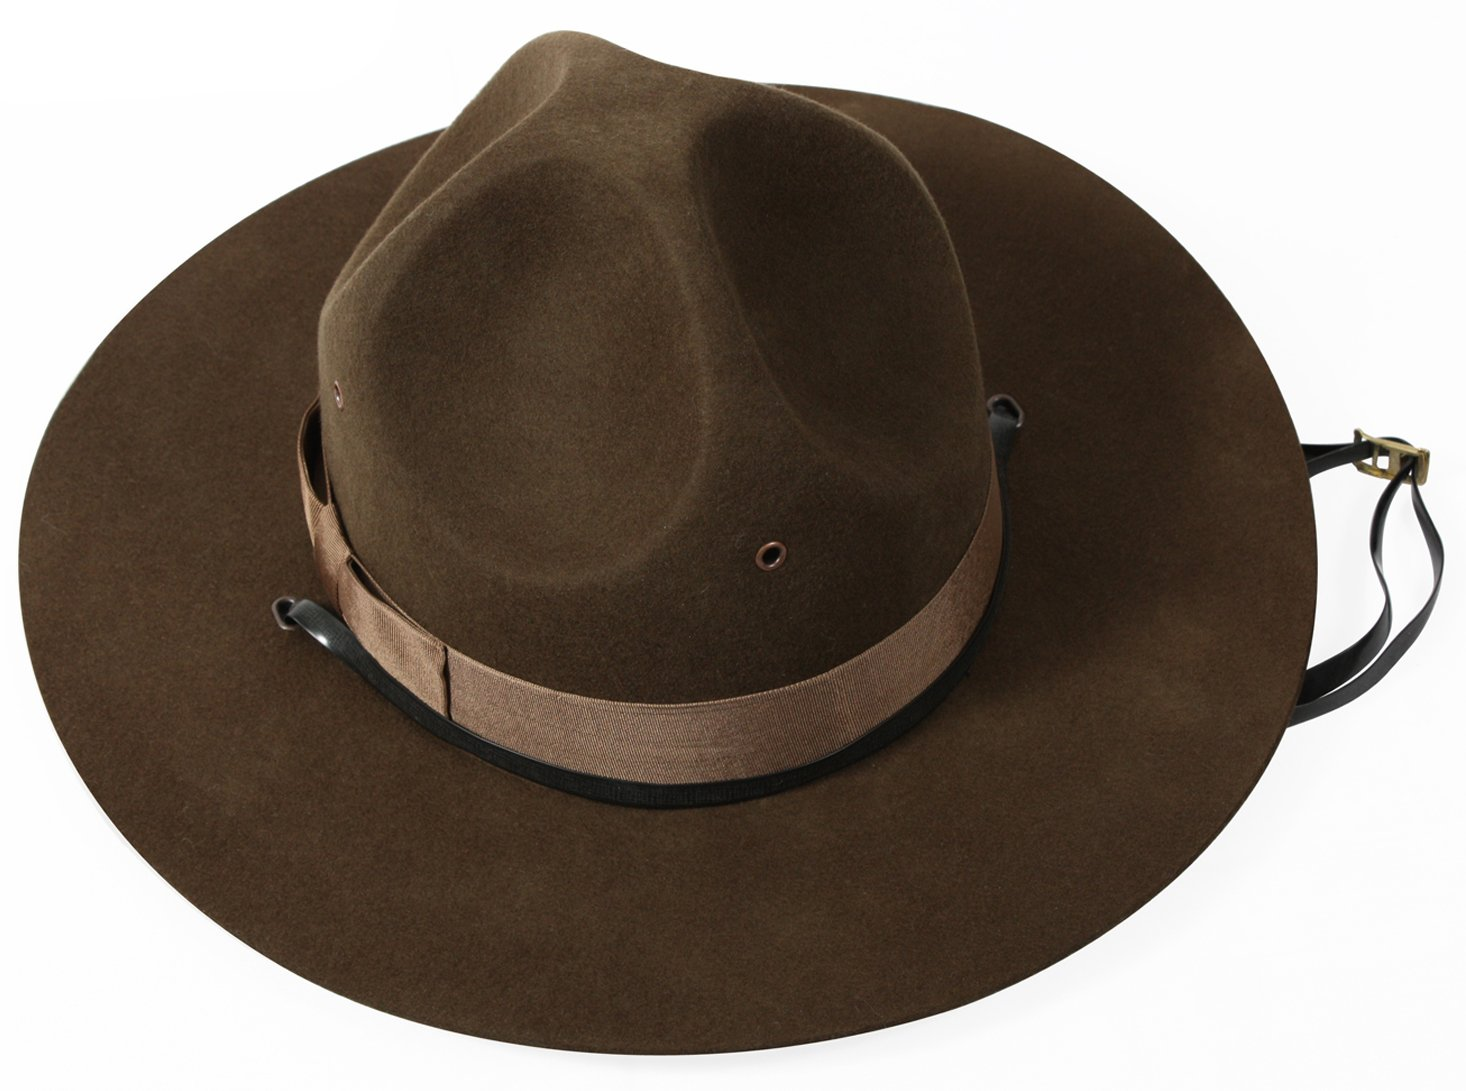 Rothco Military Campaign Hat, 7 1/2 by Rothco